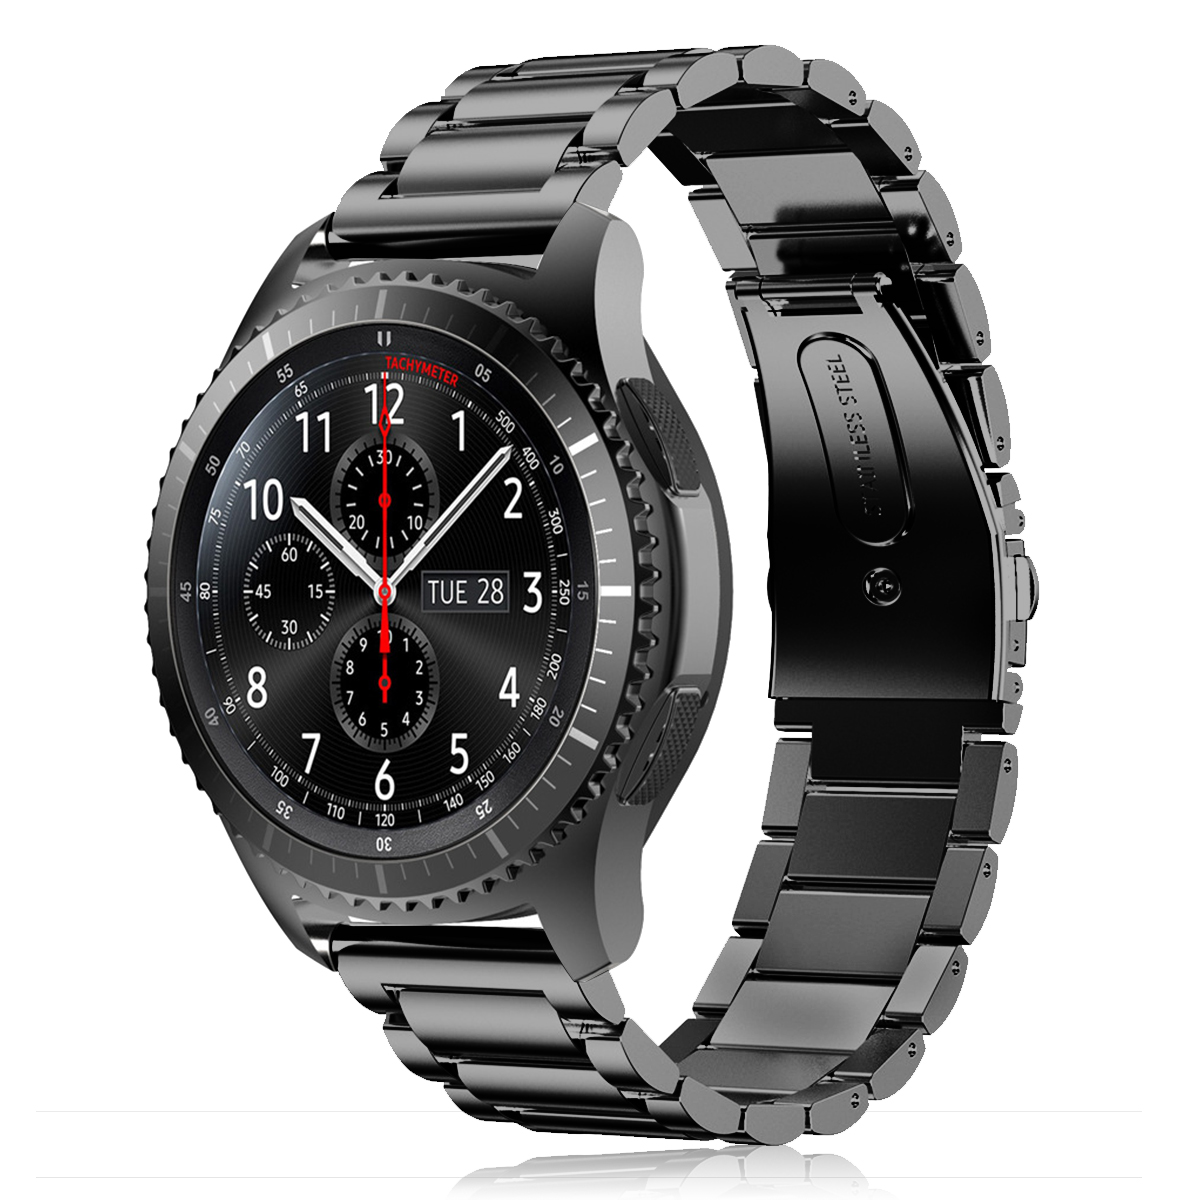 stainless steel replacement band strap for samsung gear s3. Black Bedroom Furniture Sets. Home Design Ideas